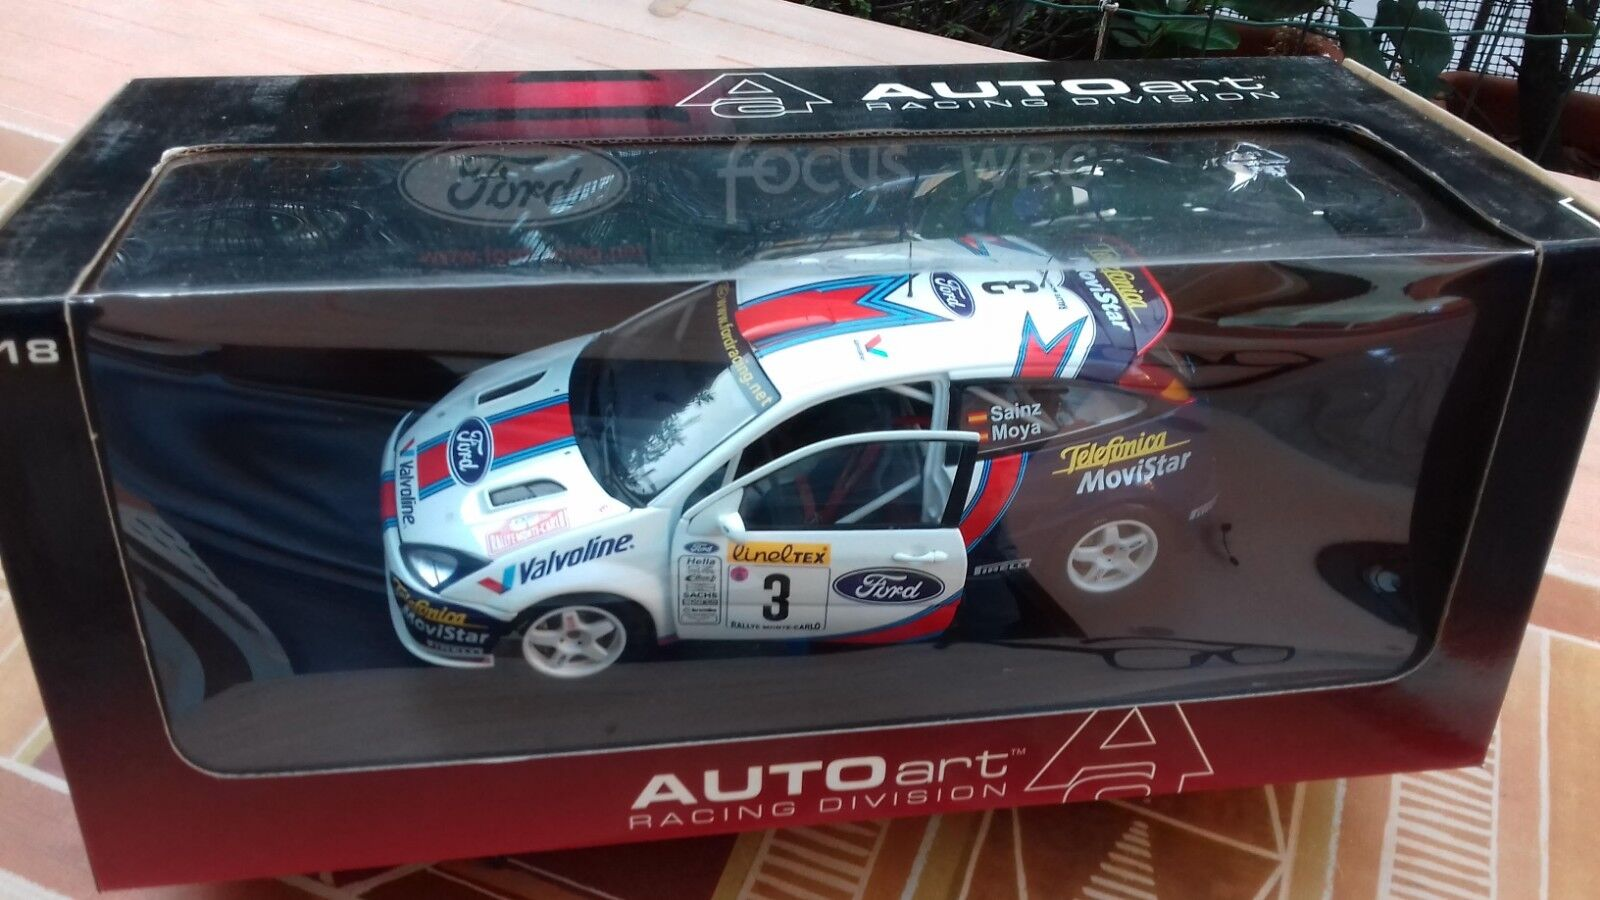 Autoart 1/18 FORD FOCUS WRC 2001 Rally Monte Carlo